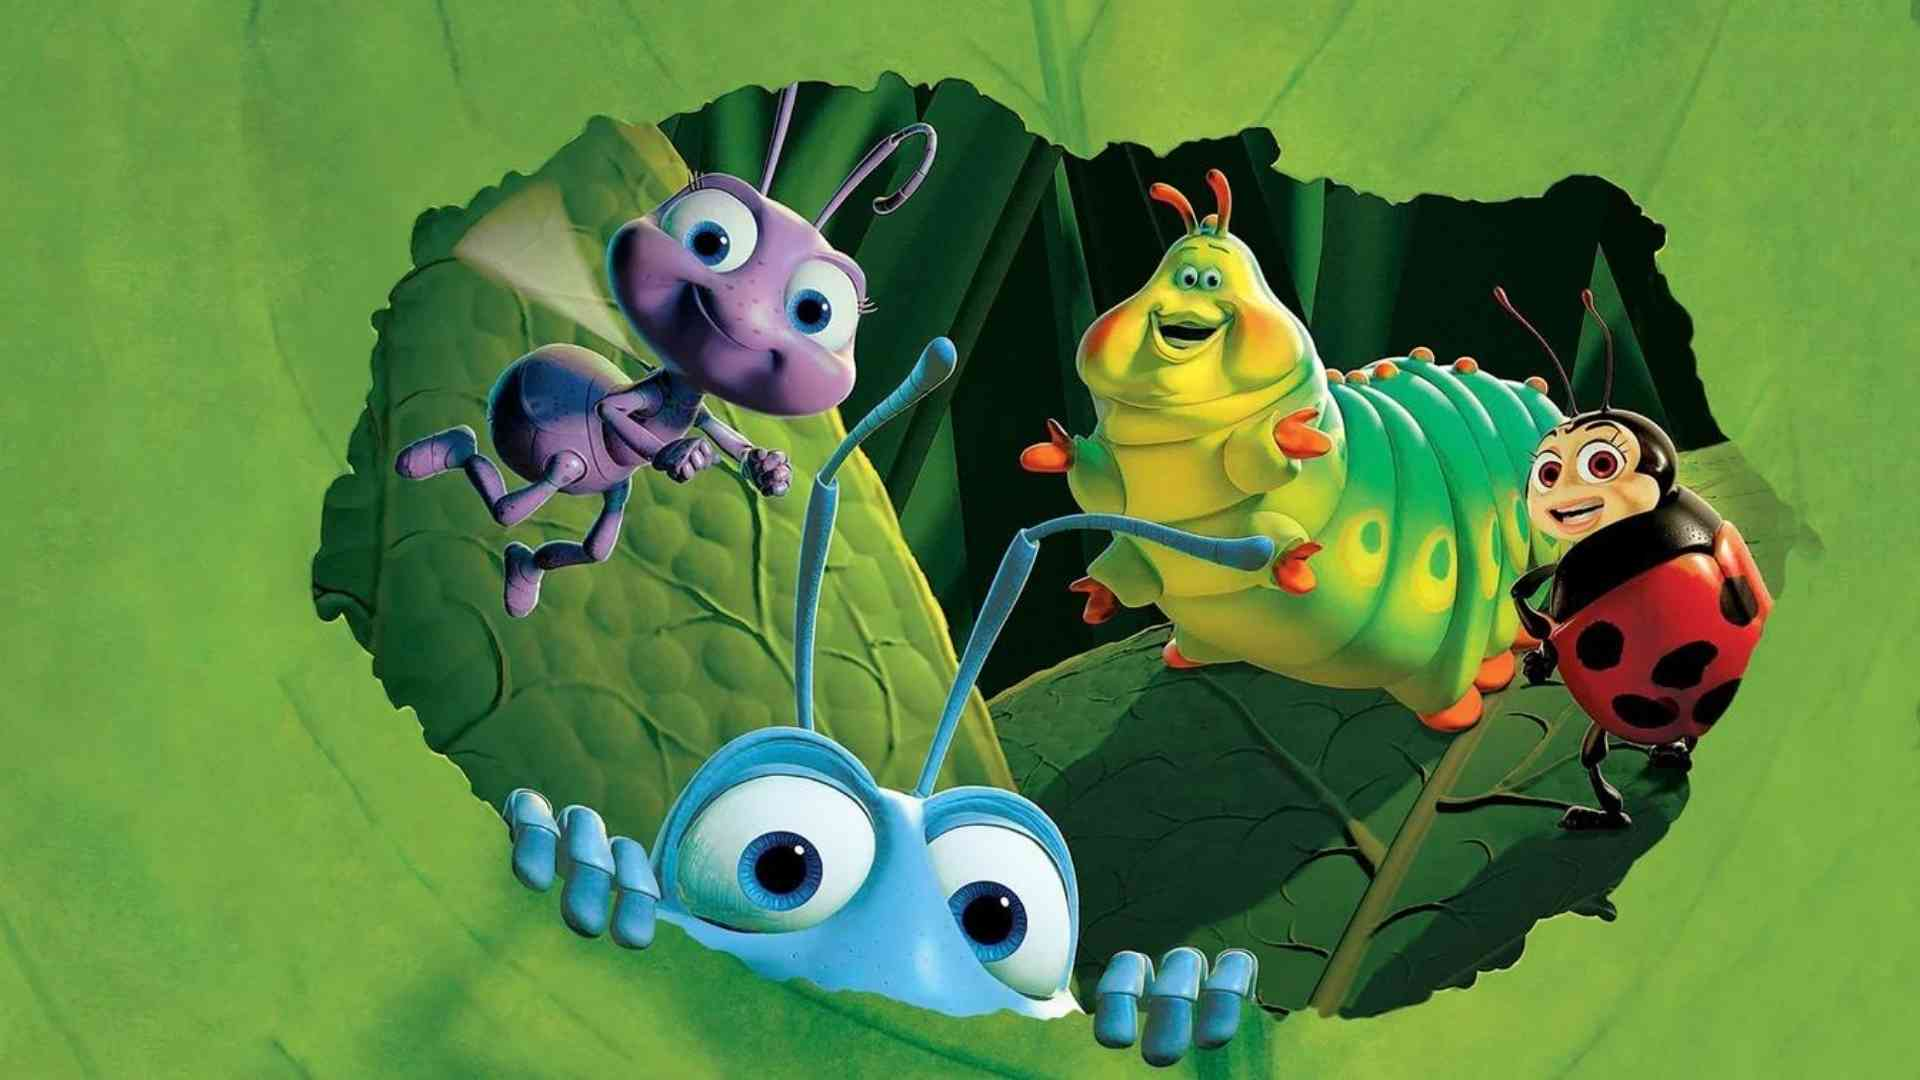 A Bug's Life - Pixar Animation Studios in the article about colors in animation